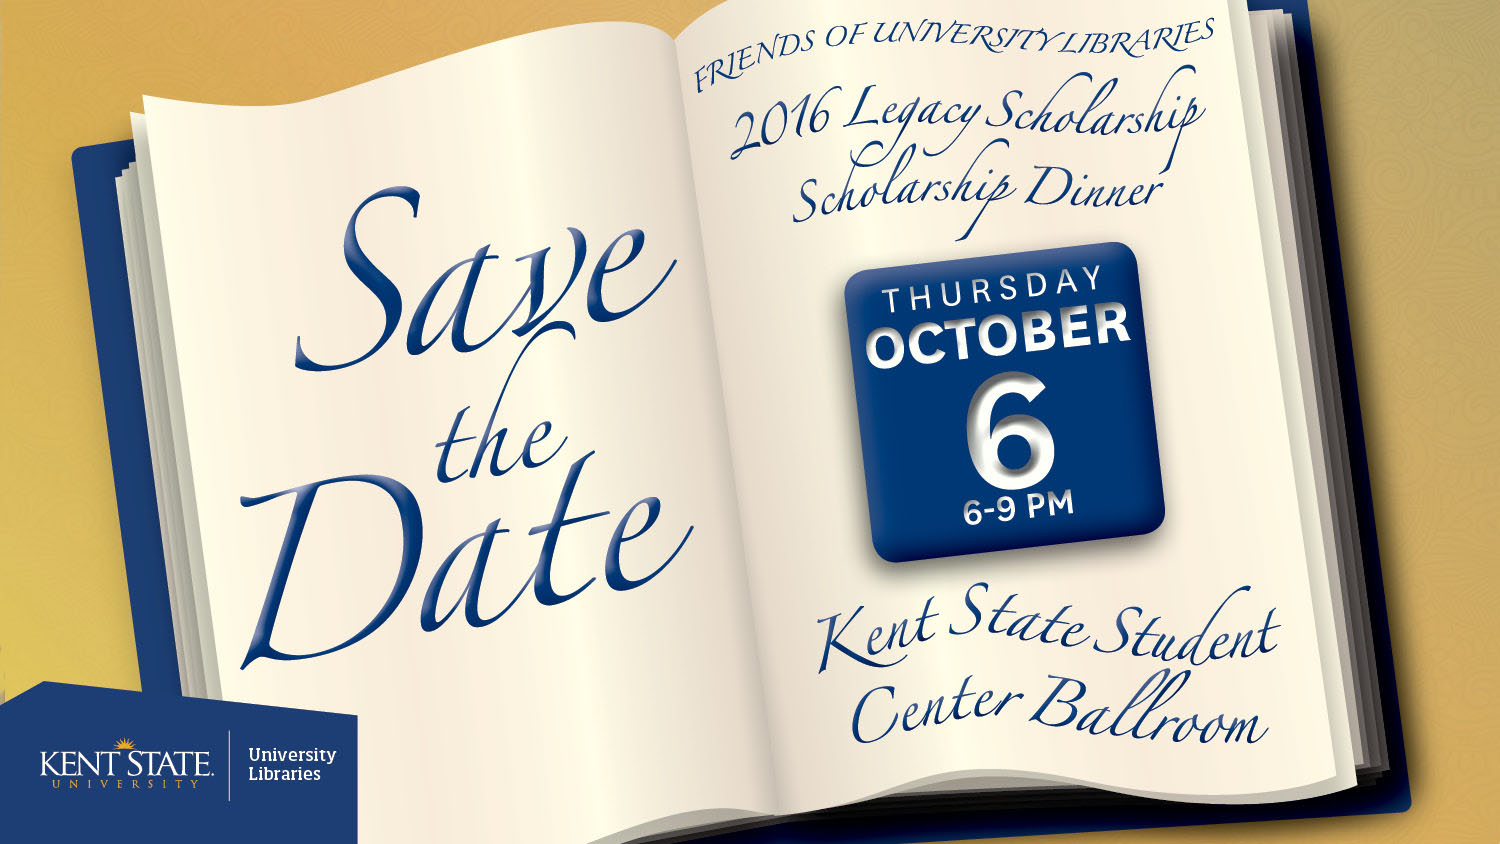 Show more about Join the Friends of the University Libraries for the 3rd Annual Legacy Scholarship Dinner on Thursday, Oct. 6 from 6-9 p.m.